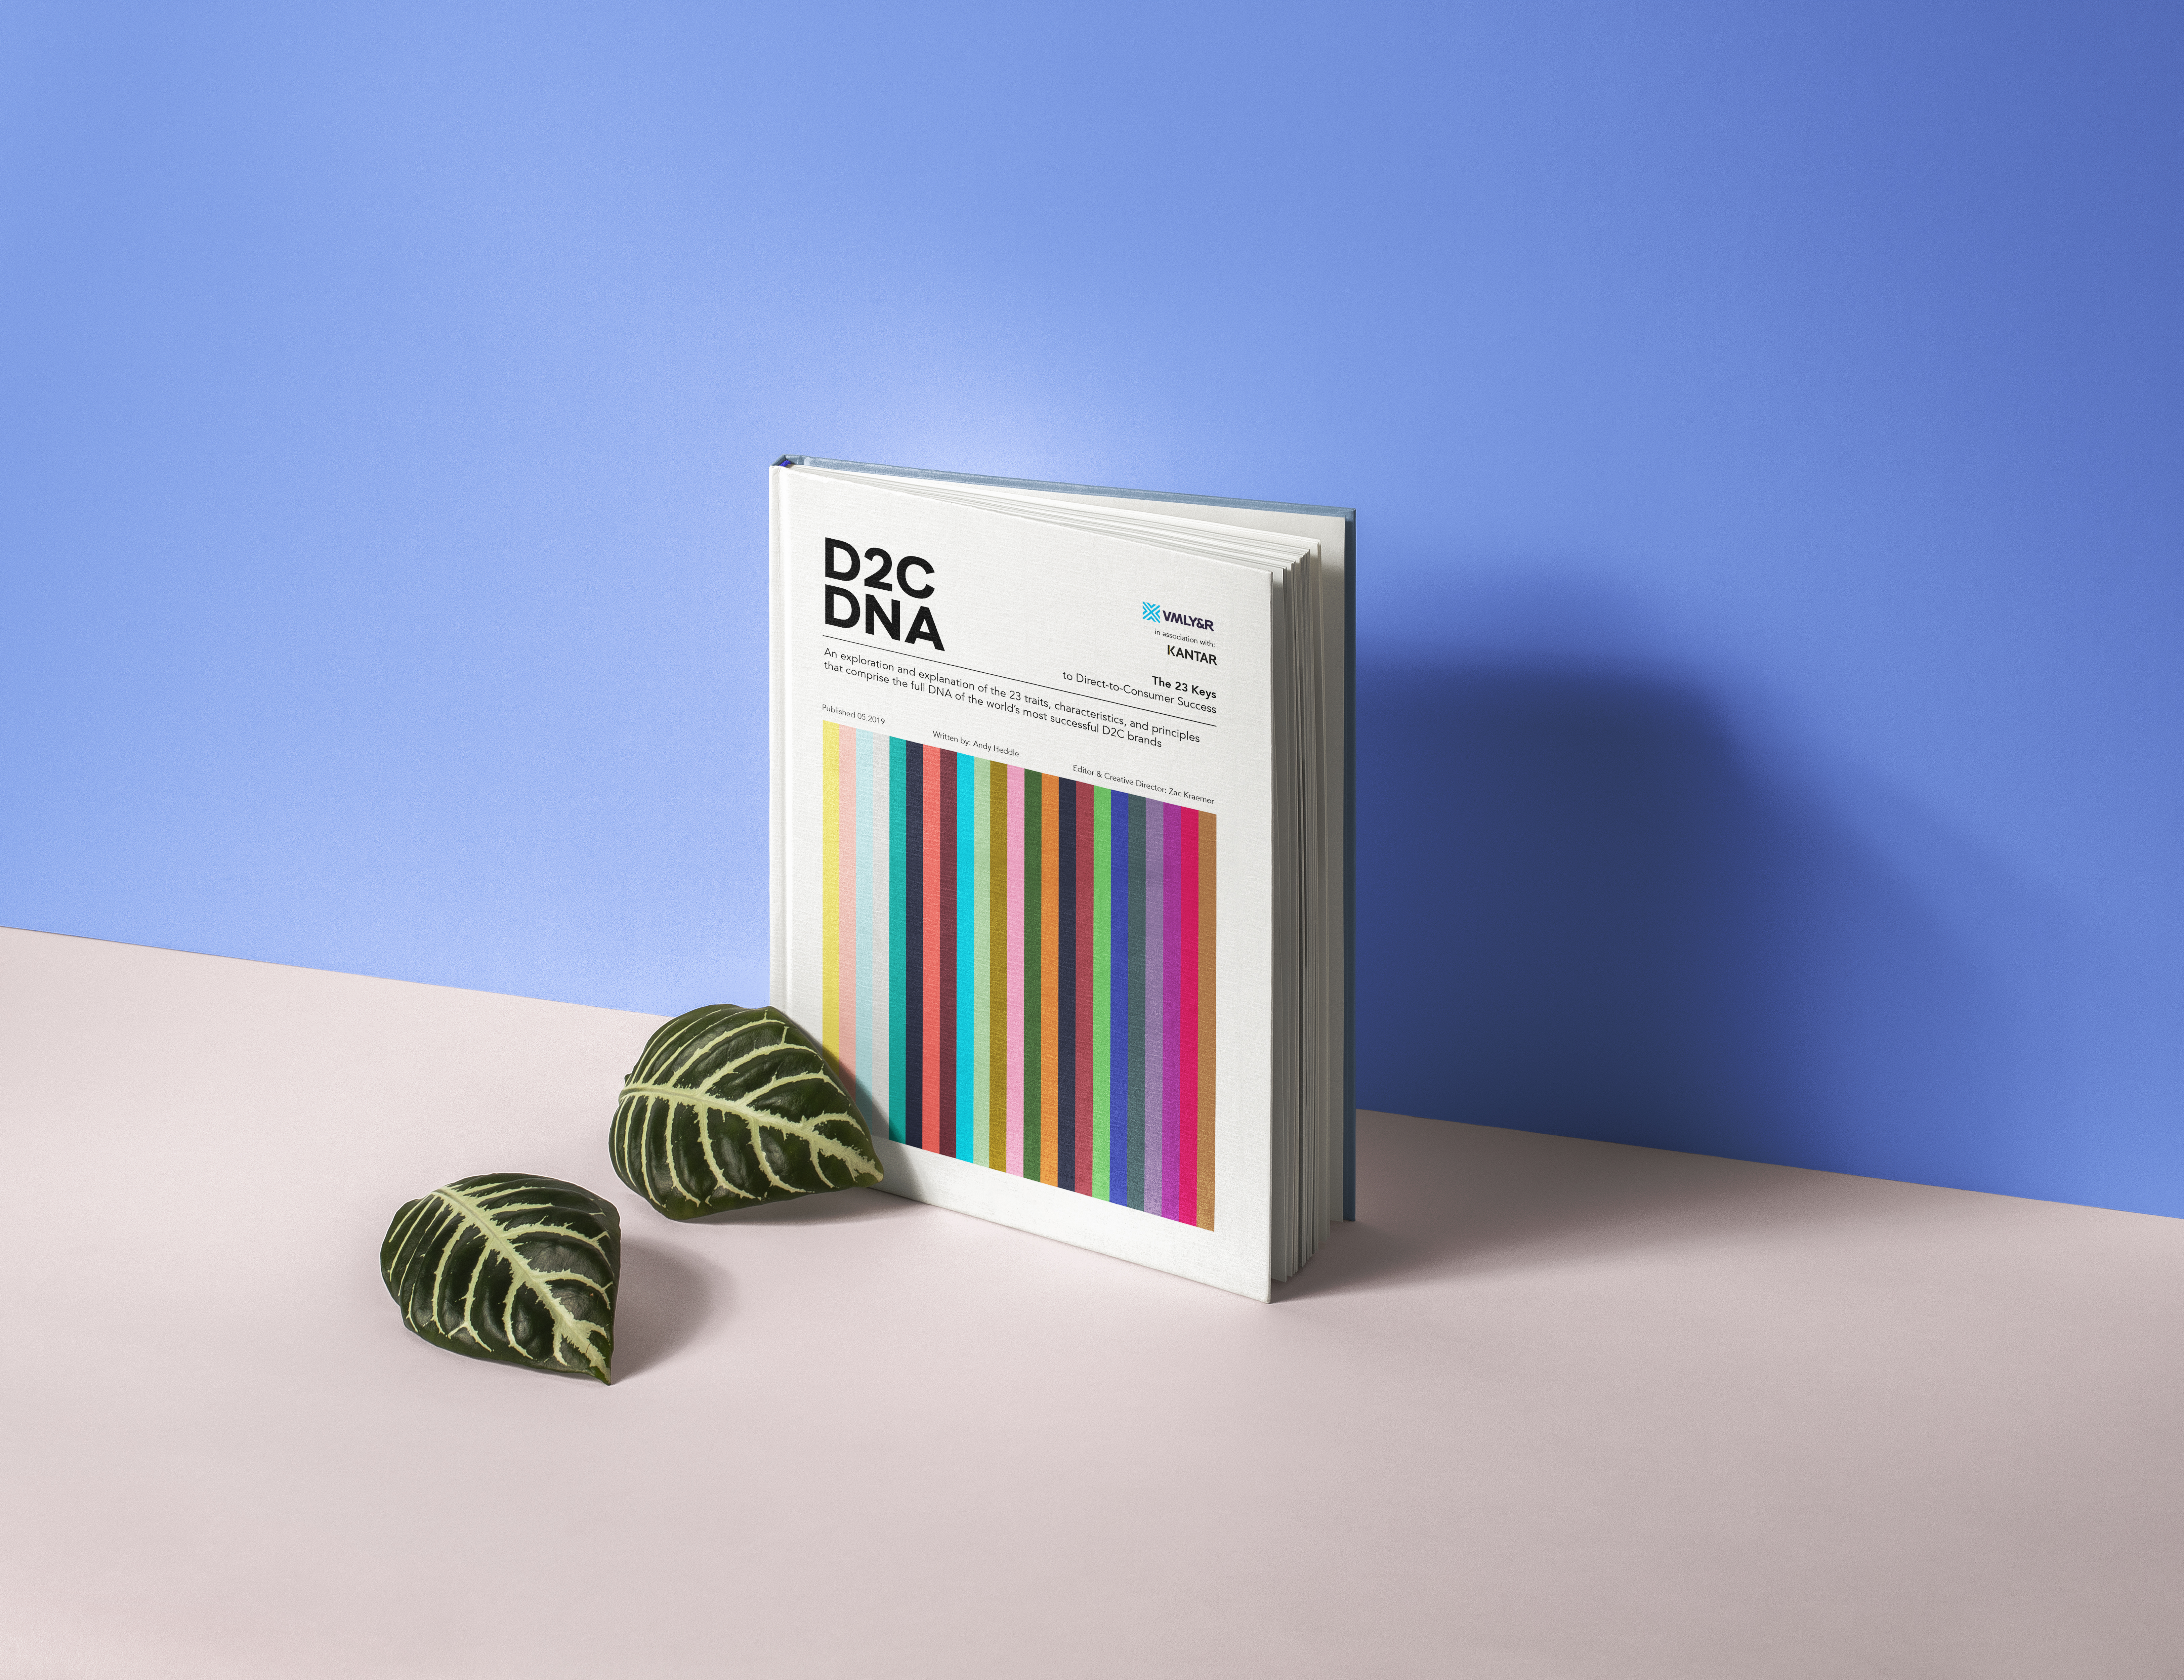 VMLY&R Launches D2C DNA, Book Exploring Direct-to-Consumer Brands